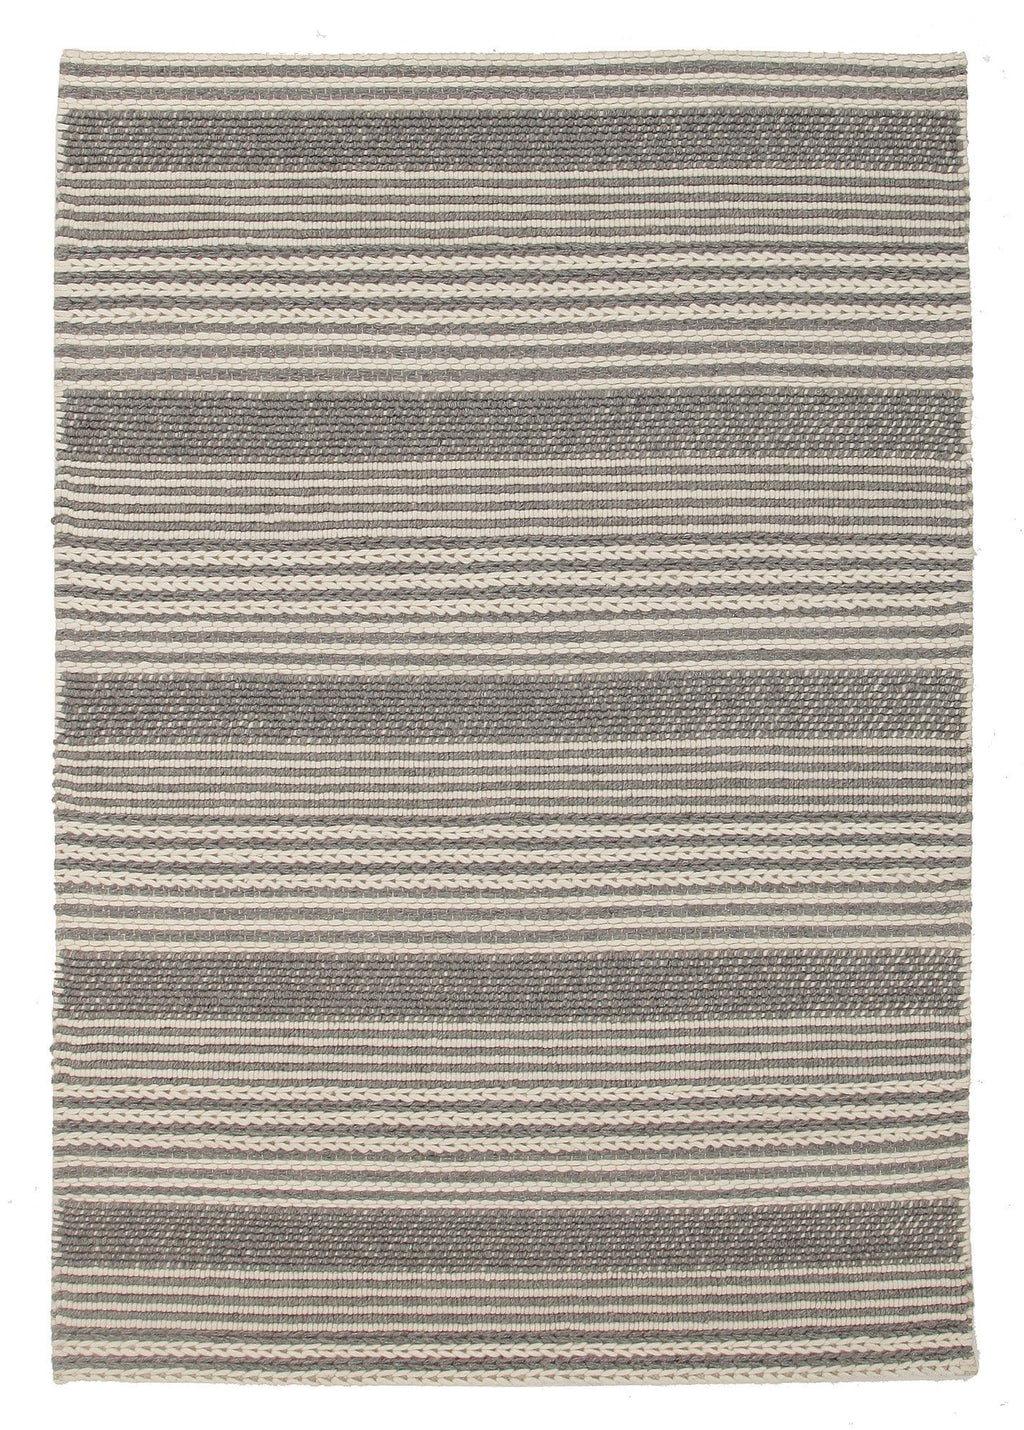 Whitby Braided Grey Stripe Wool Rug